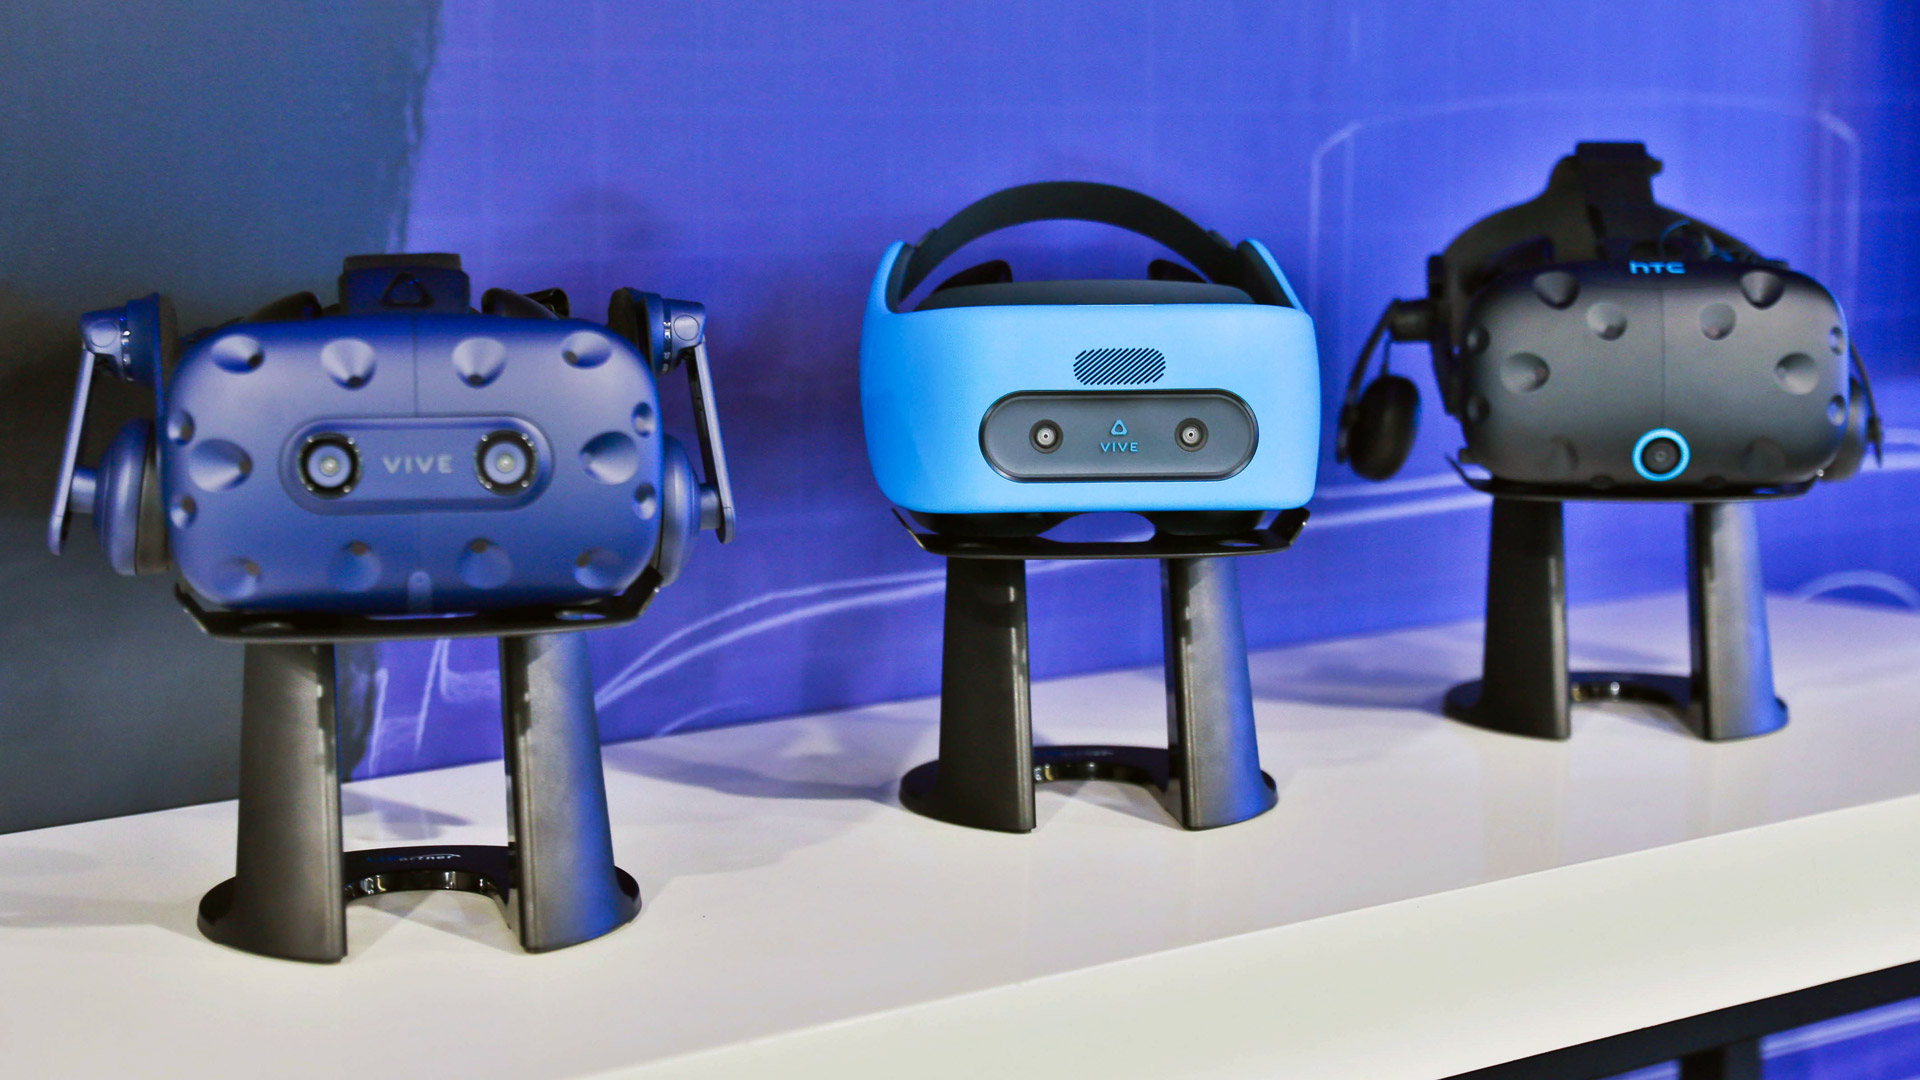 HTC: Vive Cosmos is Not a Successor to the Original Vive